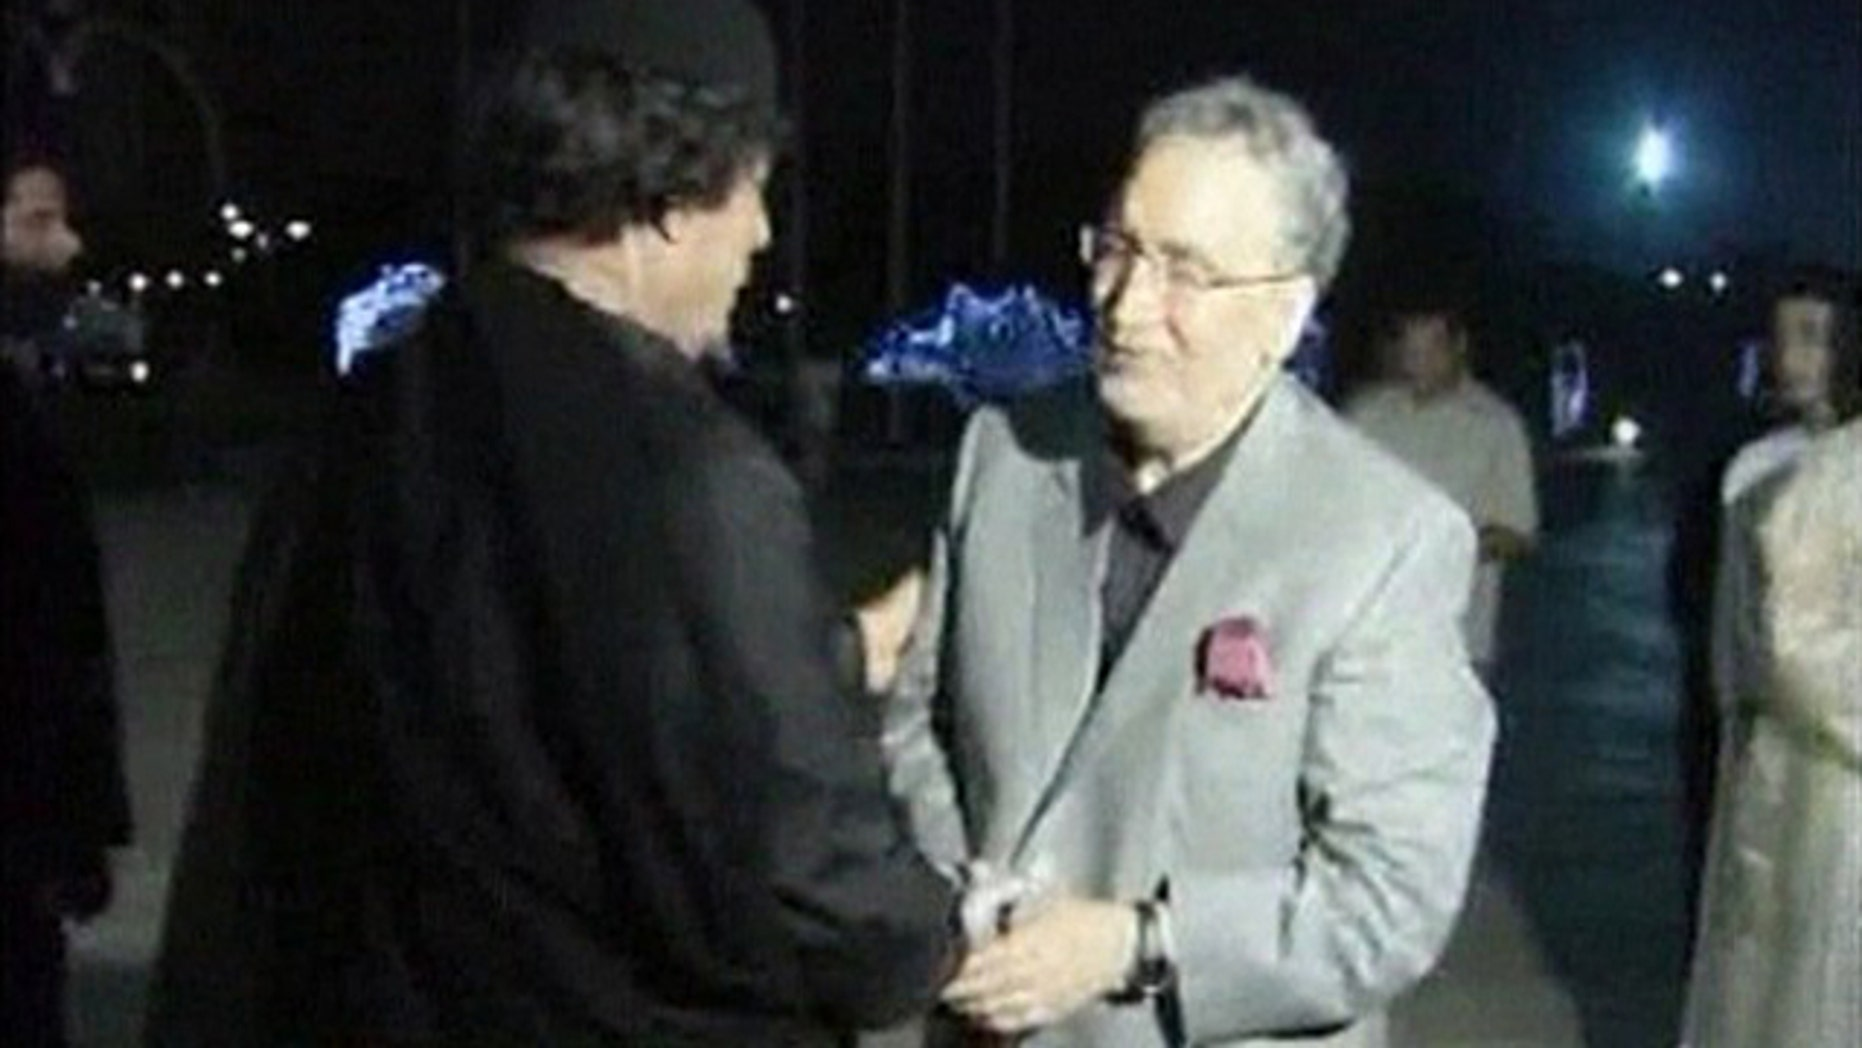 Aug. 21, 2009: Convicted Lockerbie bomber Abdelbaset al-Megrahi shakes the hand of Libyan leader Muammar Qaddafi in Tripoli in this image from Libya TV. (Reuters)